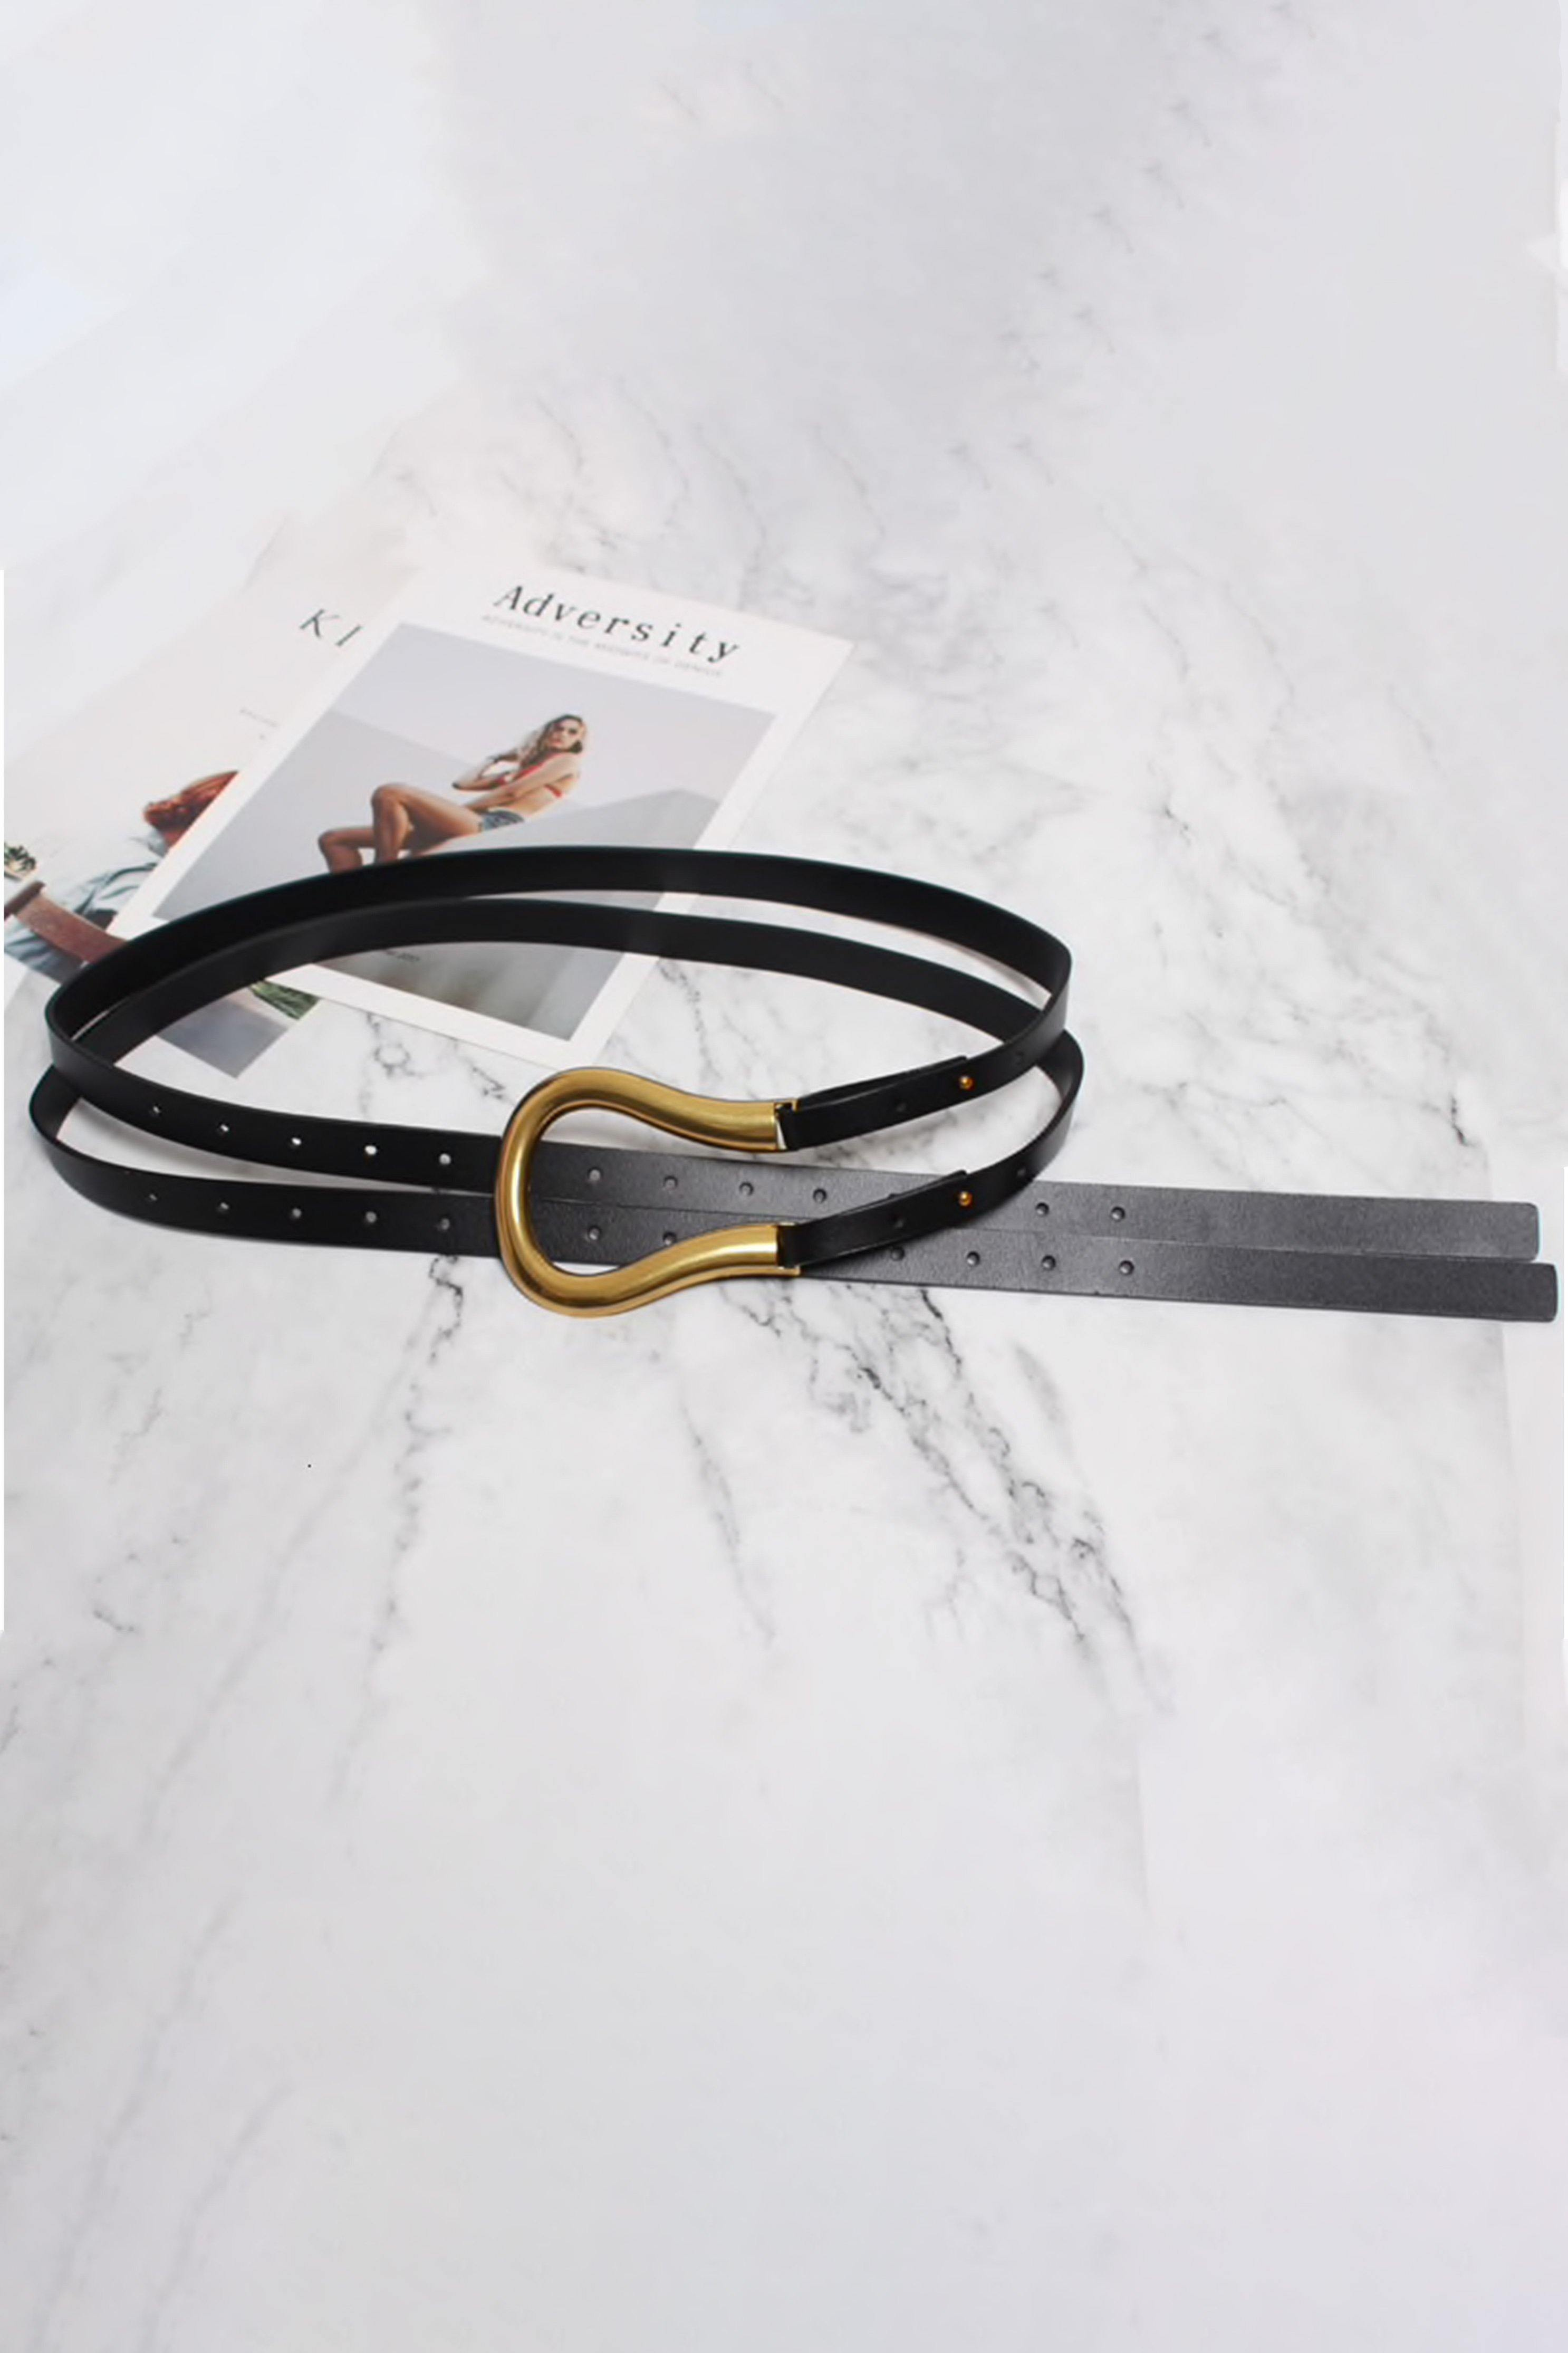 RANCHER BELT IN BLACK | Women's Online Shopping | CHICLEFRIQUE